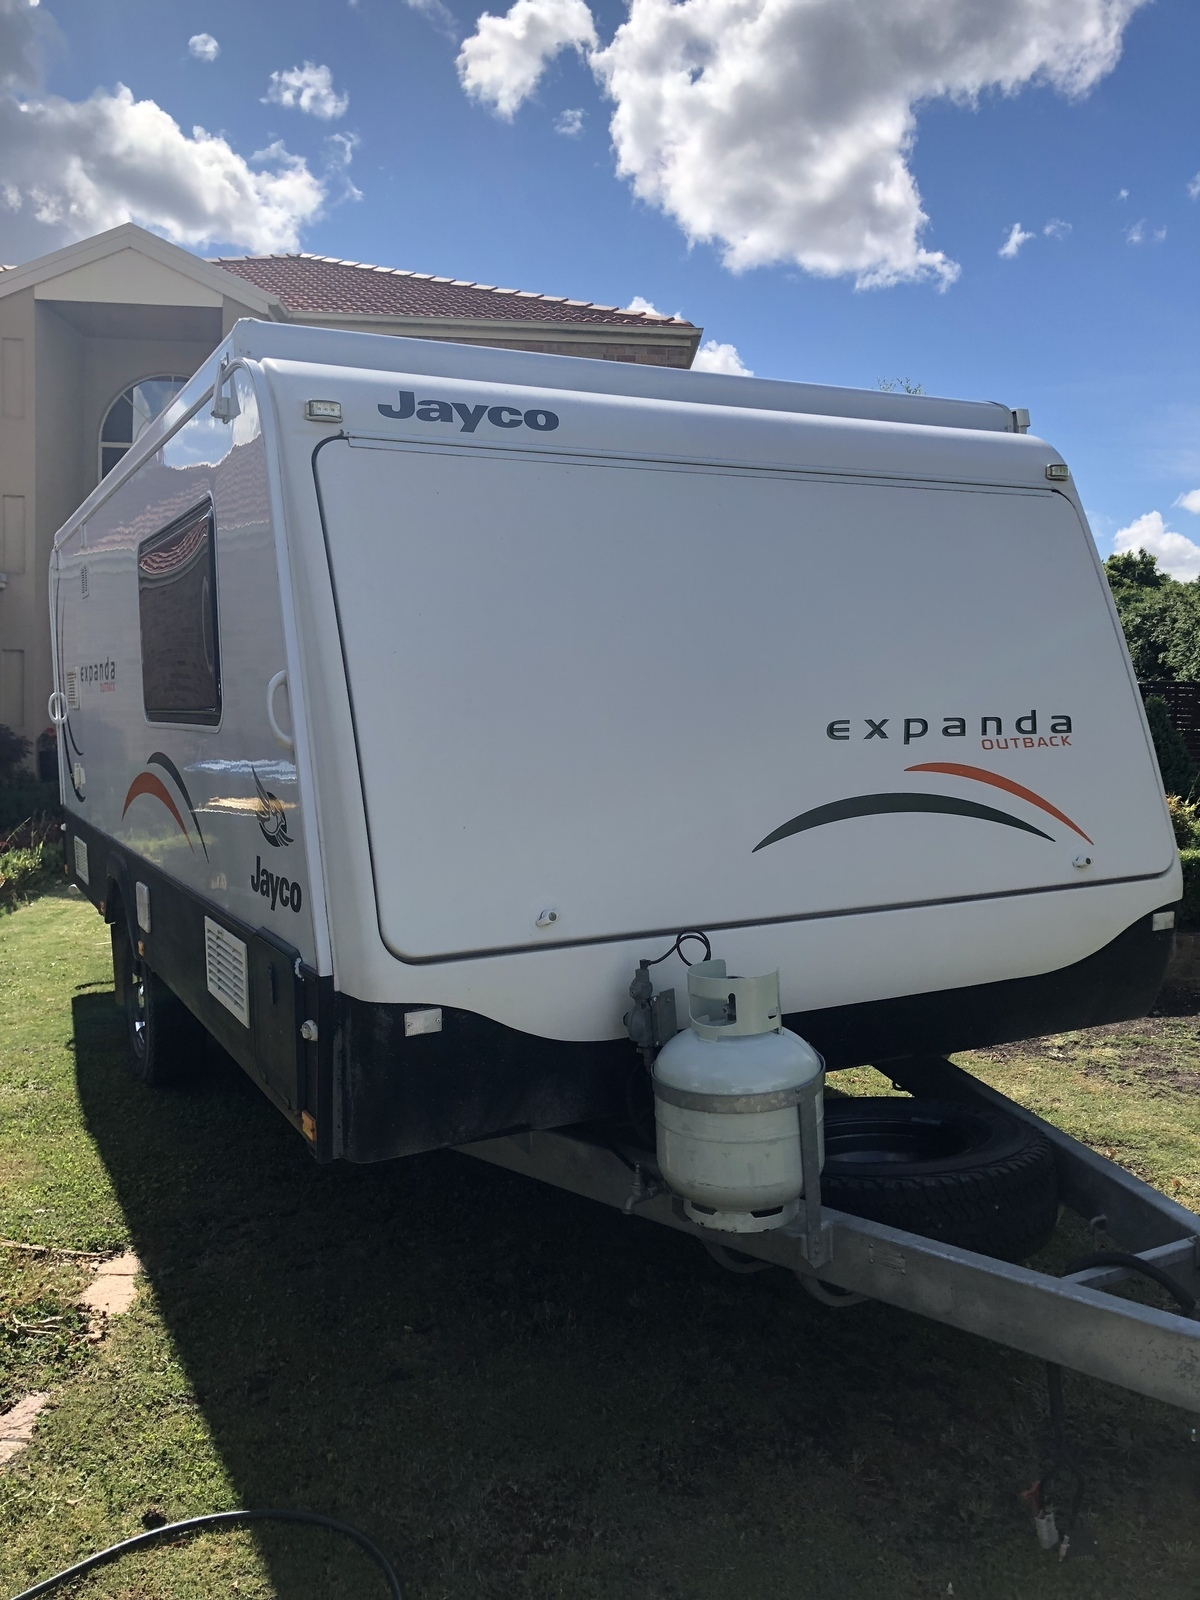 New listing Dusty 2012 Outback Expanda - Cover Image